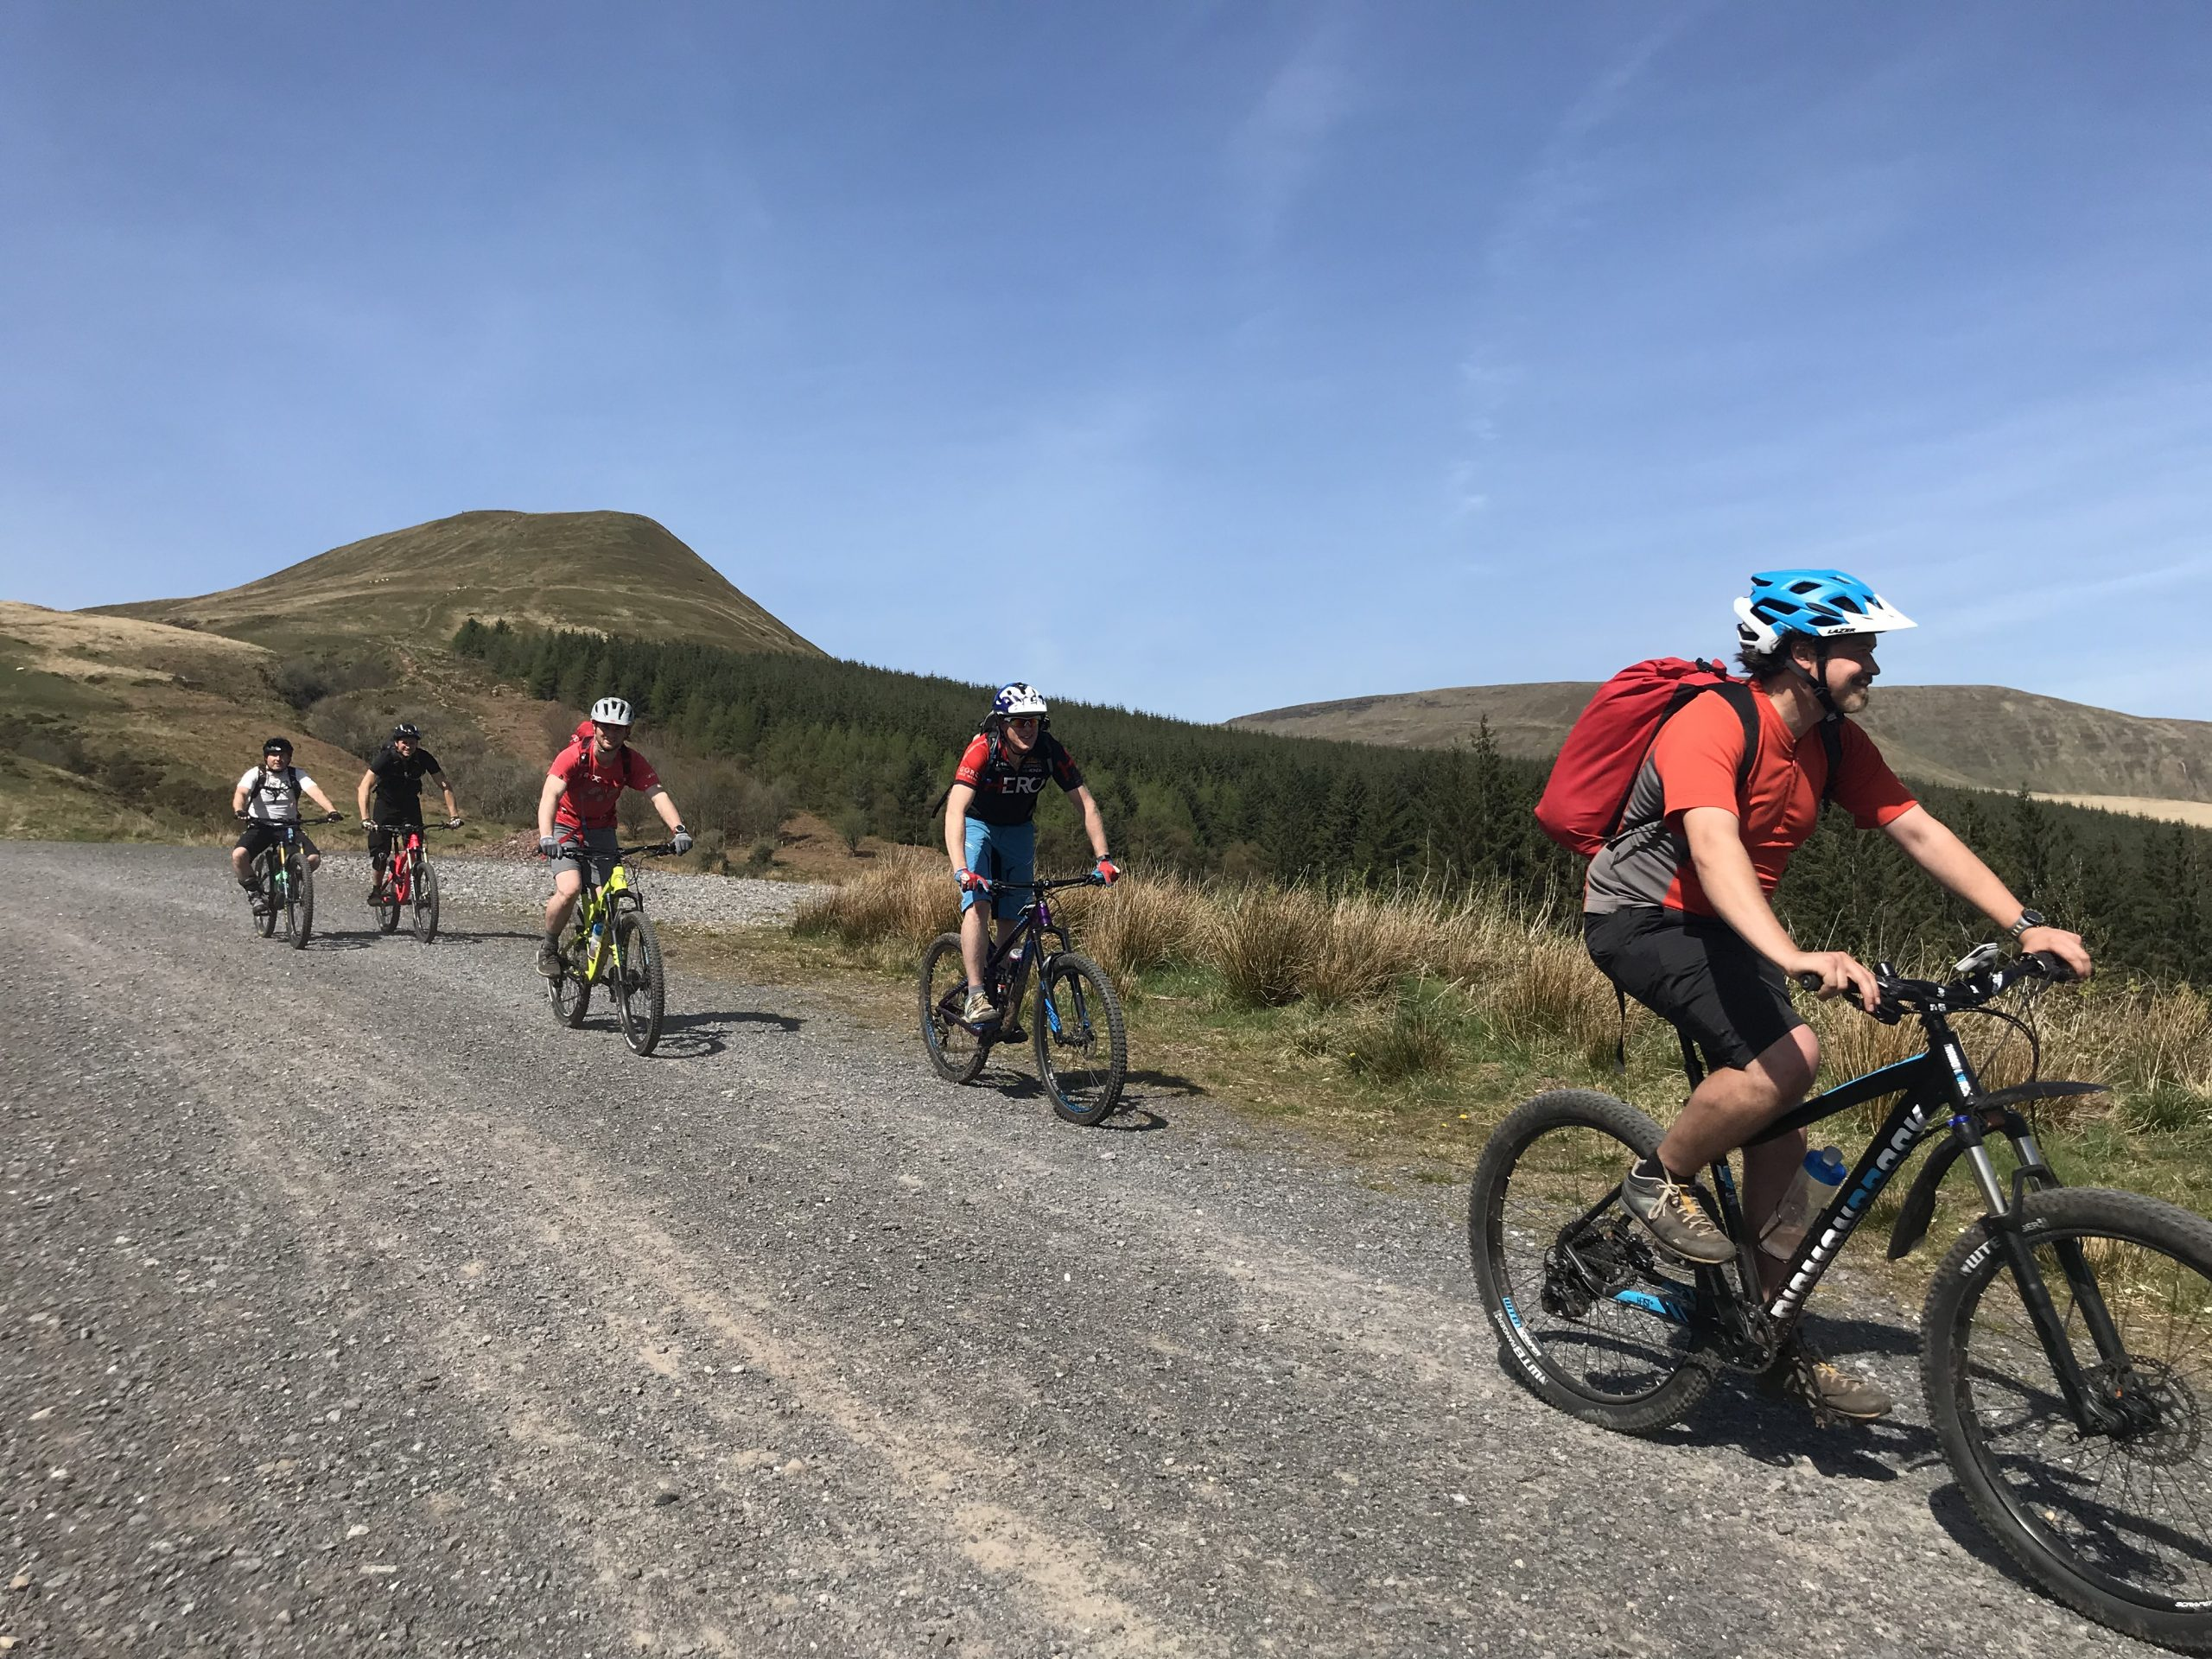 MTB Guided Rides, South Wales, Wye Valley, South wales, MTB guides, Talybont on usk, MTB wales, TRips on bikes, Guided rides South wales